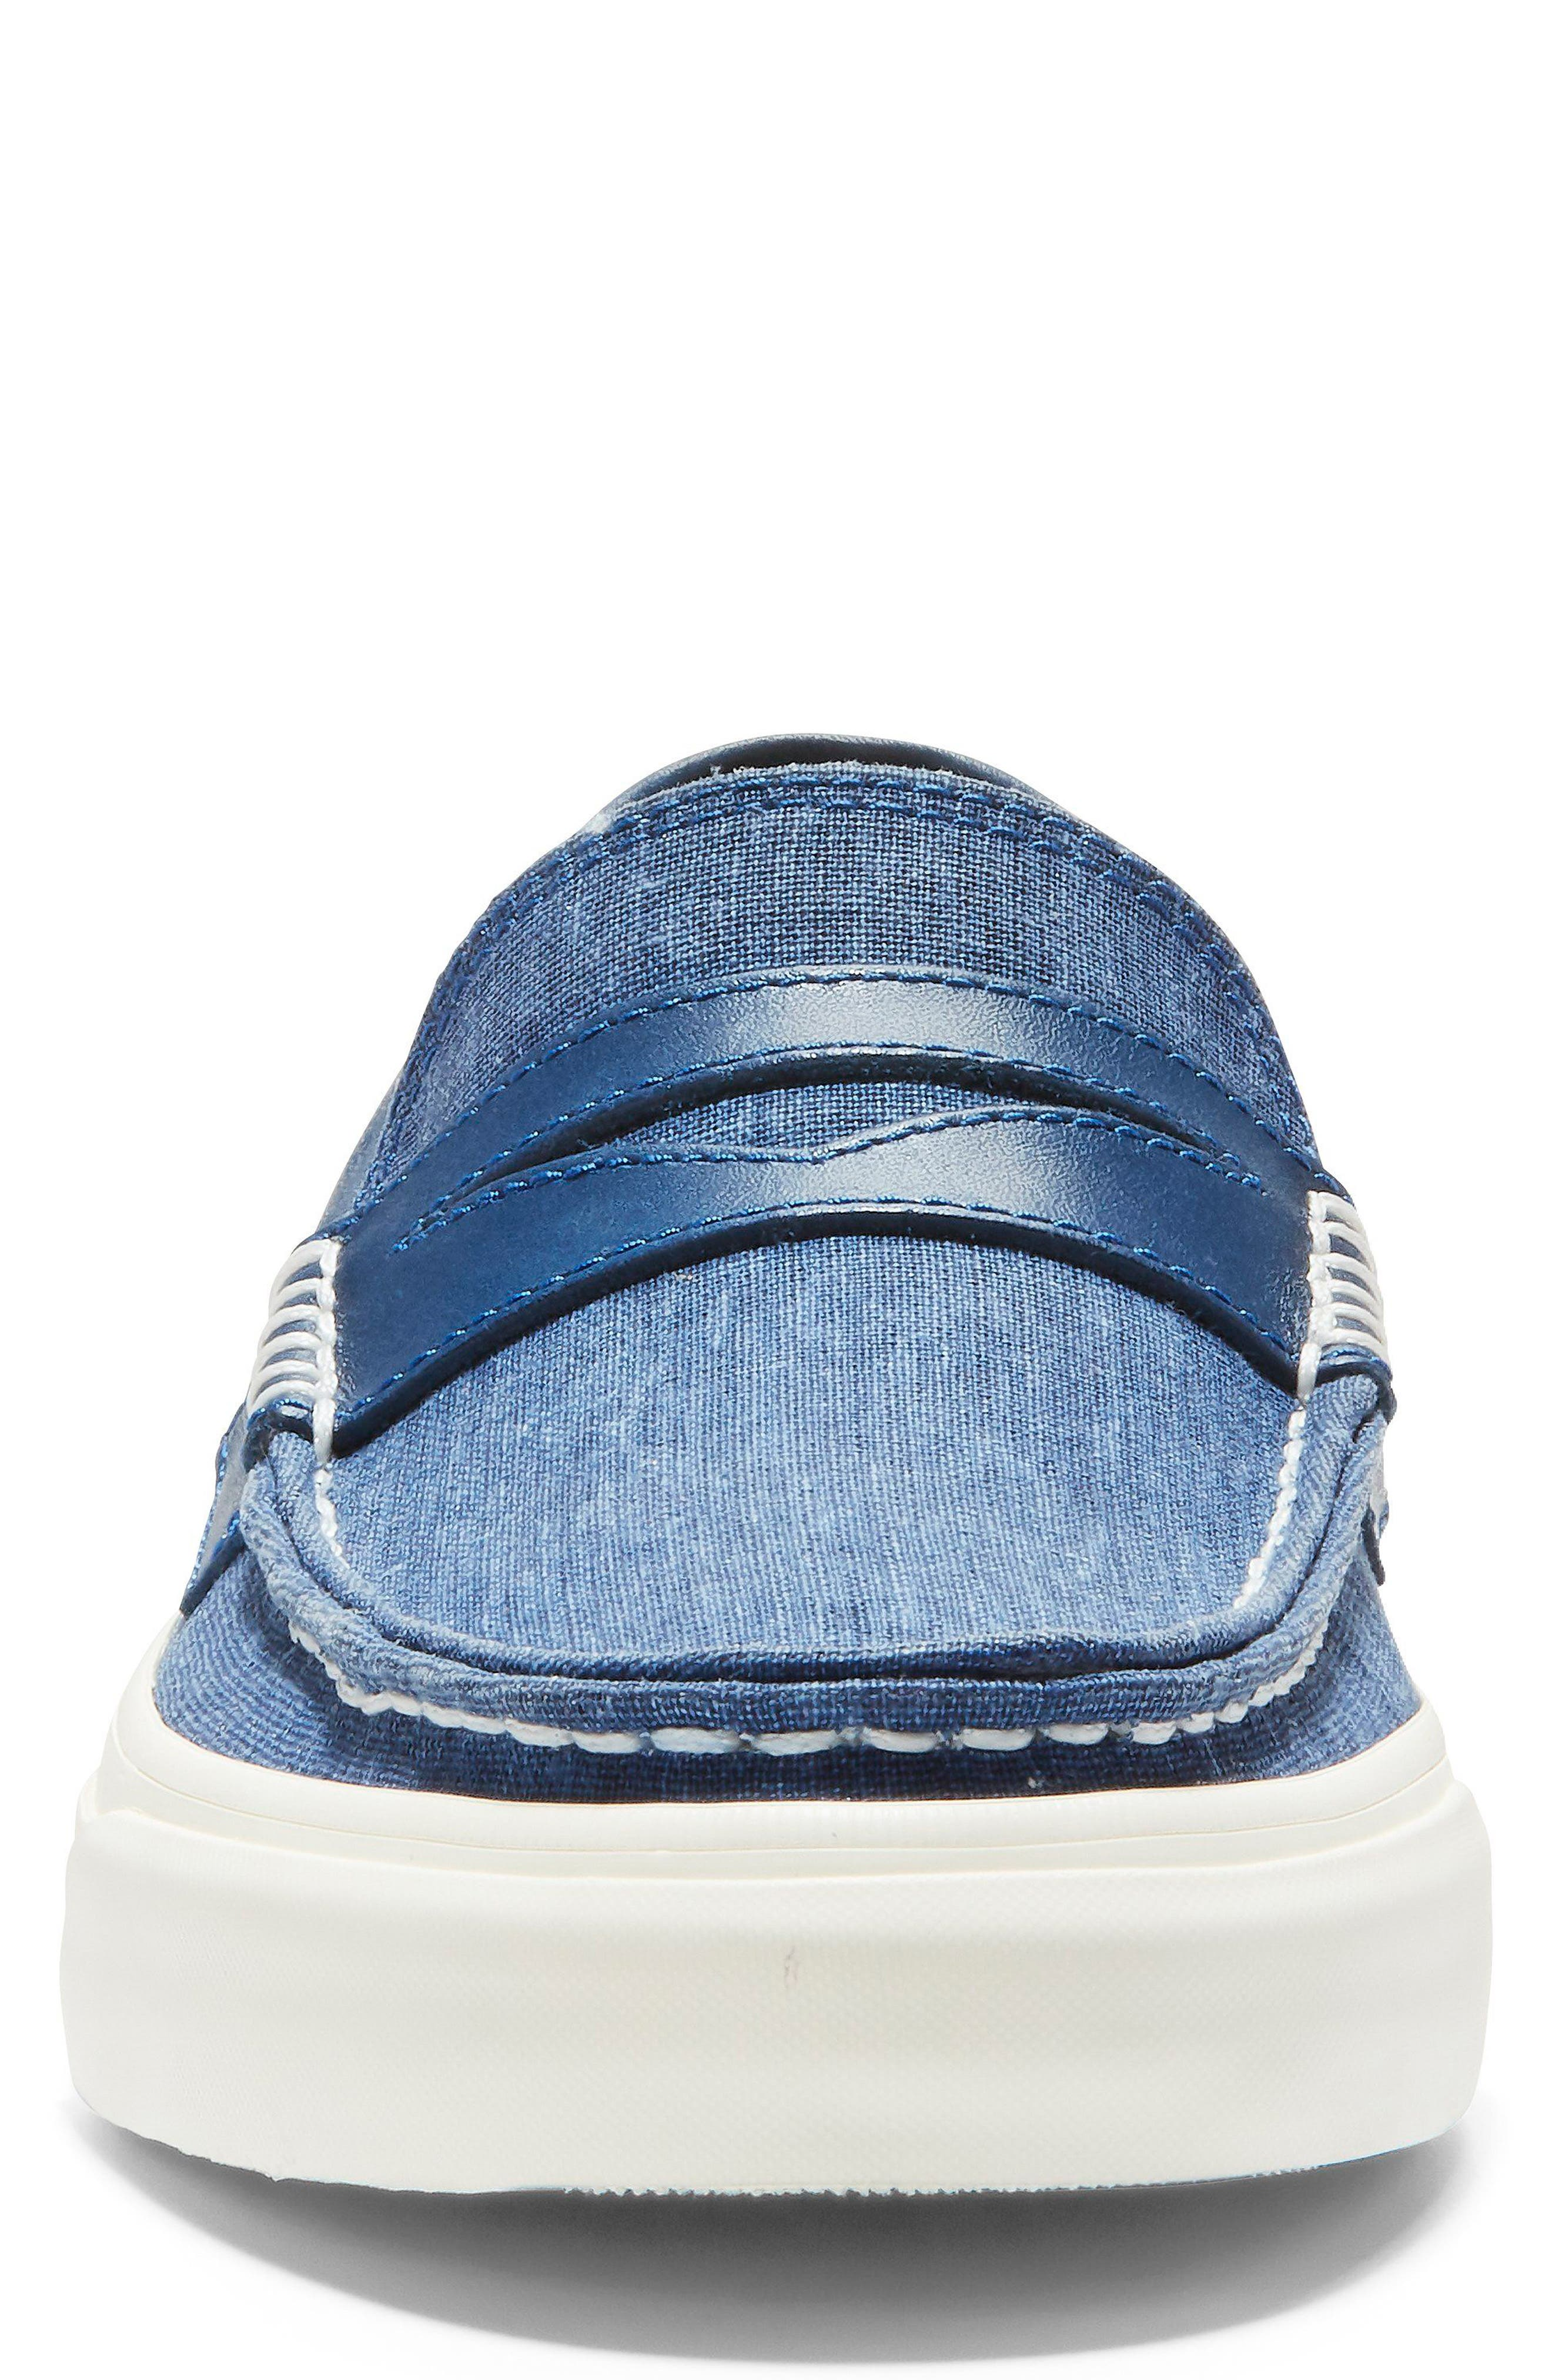 Pinch Weekend LX Penny Loafer,                             Alternate thumbnail 39, color,